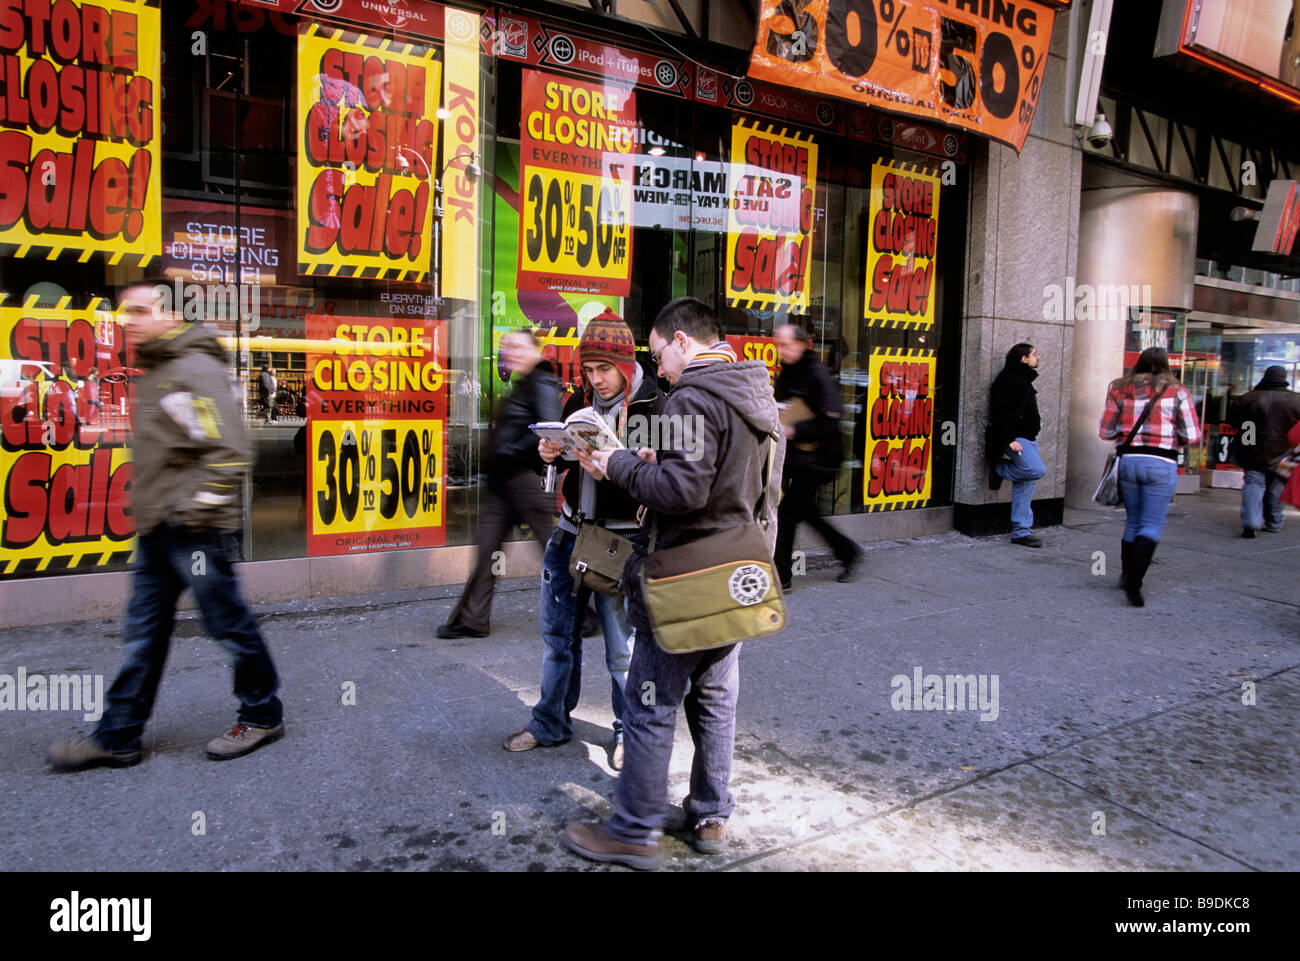 Map Of New York For Sale.New York Going Out Of Business Sale Tourists Looking At Map On The